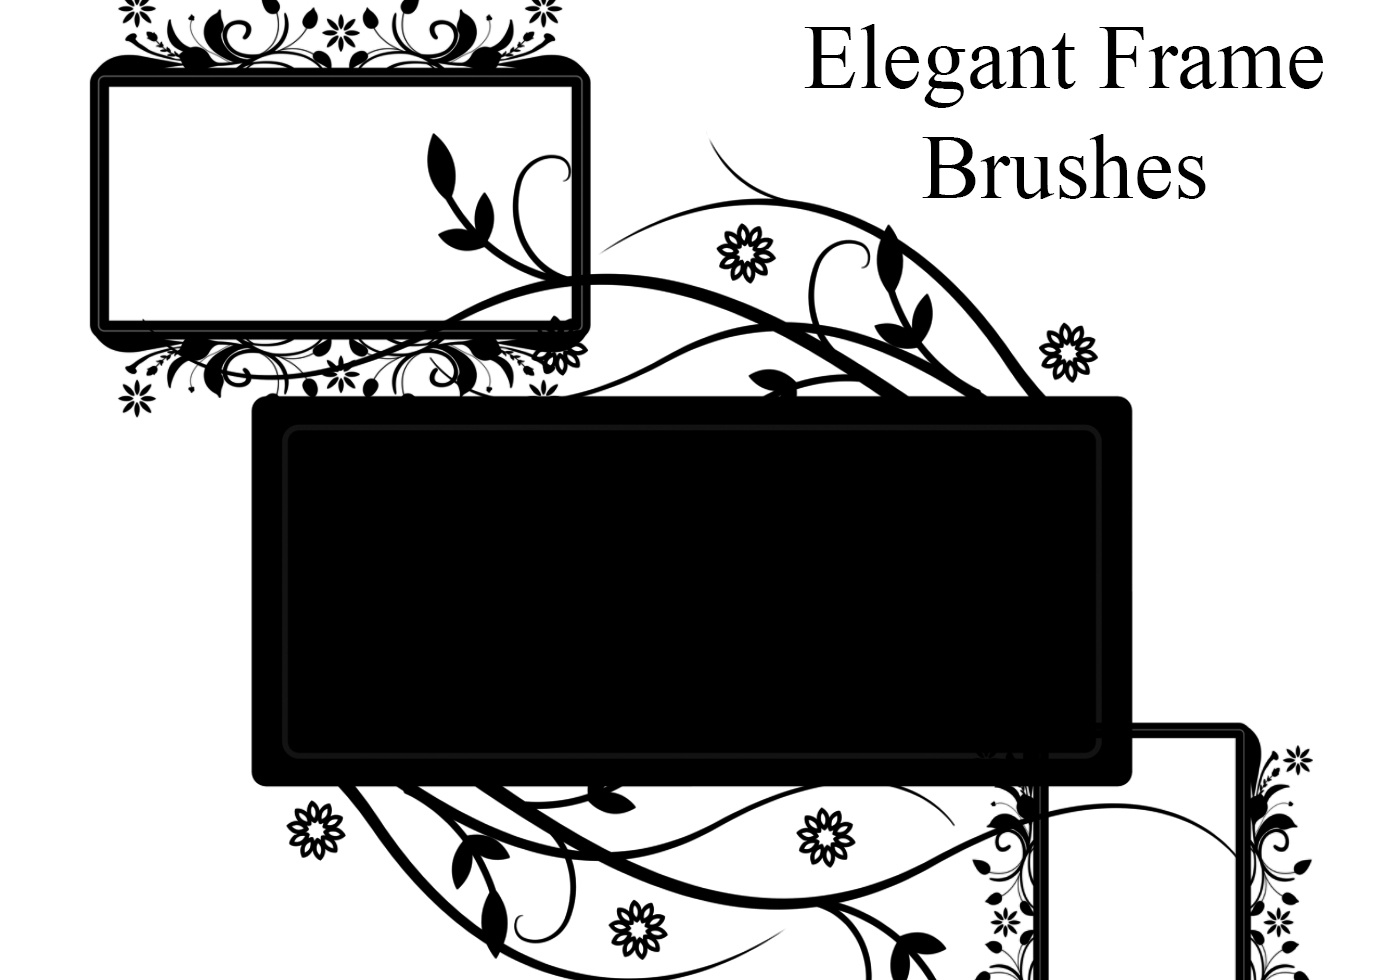 Elegant Frame Brushes Free Photoshop Brushes At Brusheezy